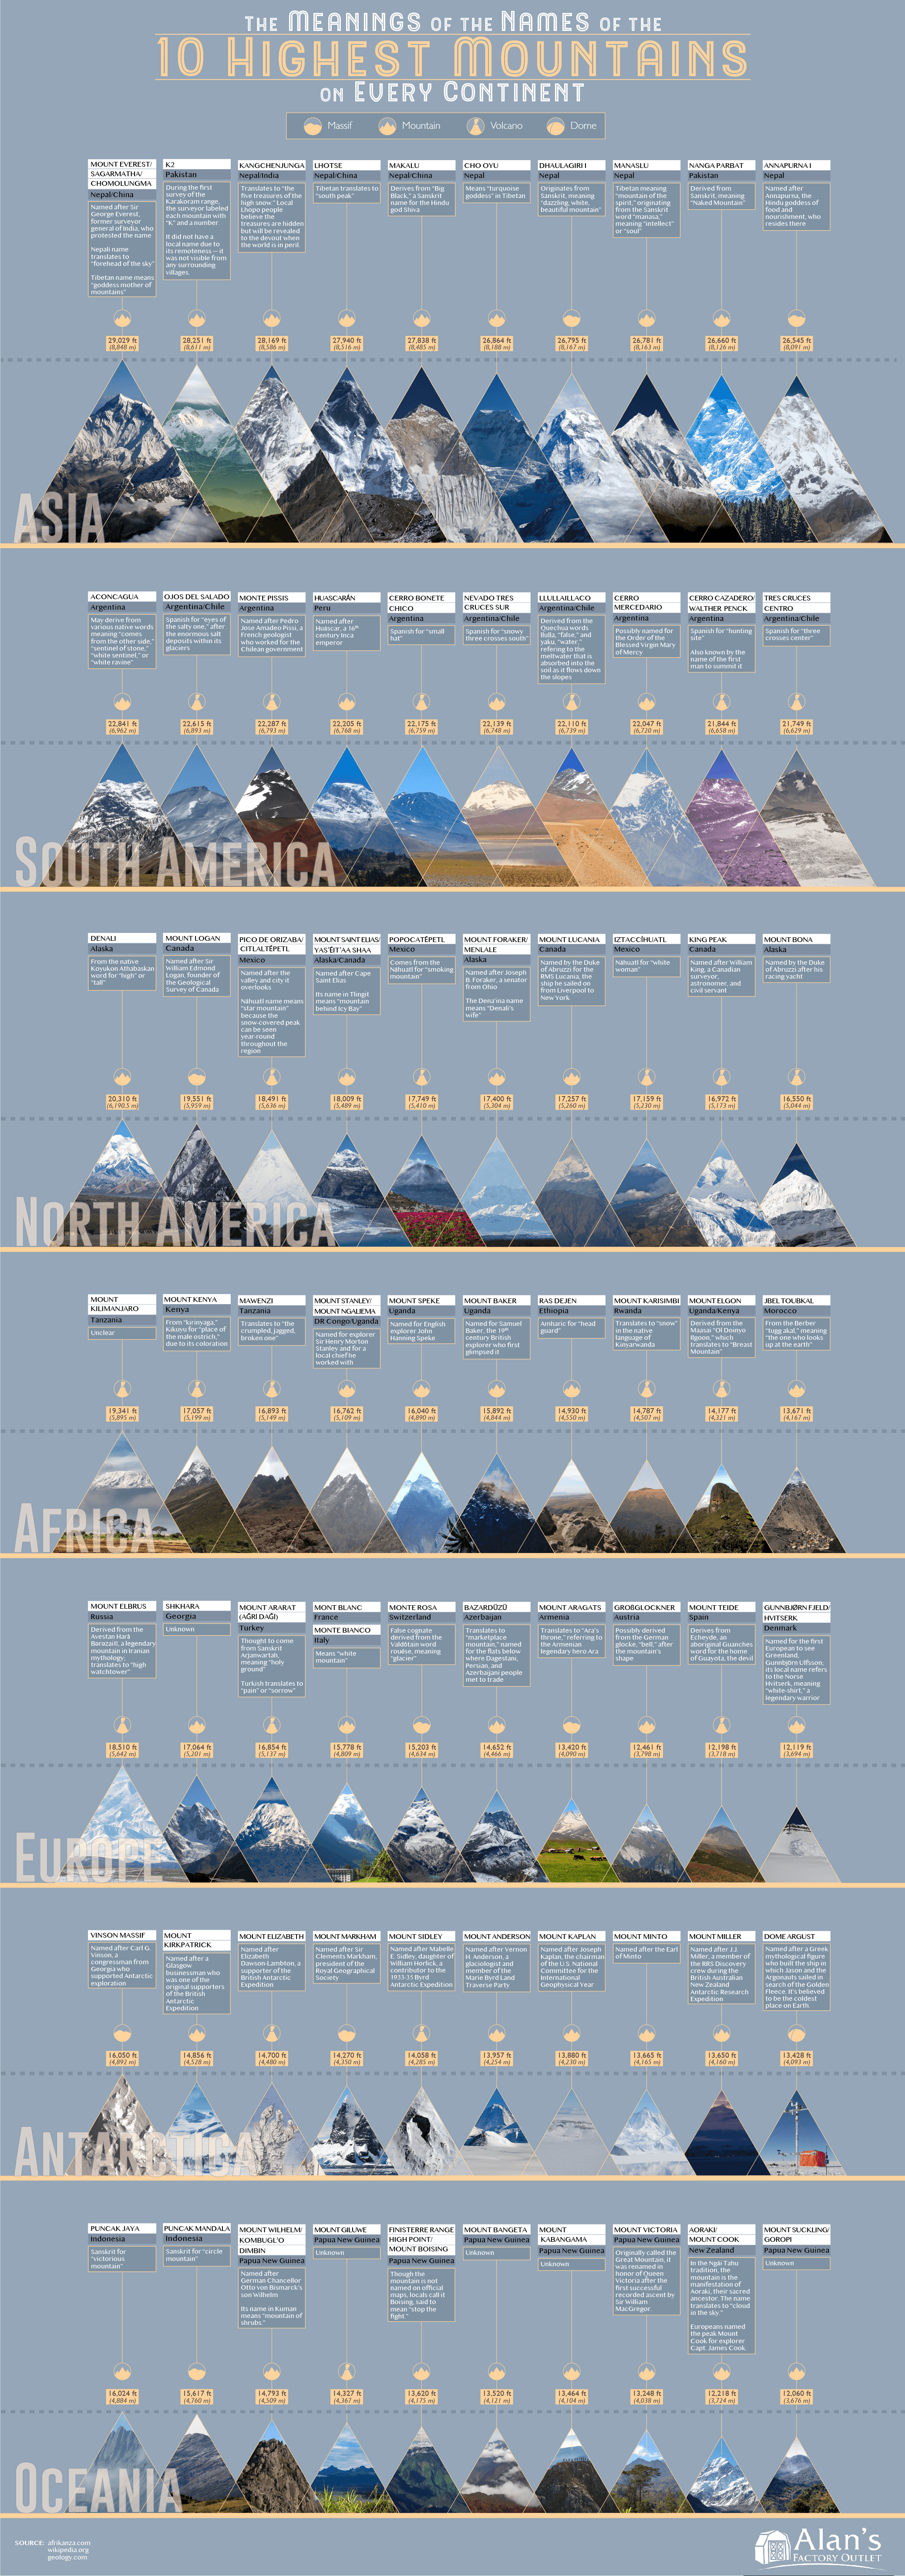 How Did These Highest Mountains In The World Get Their Name? - Infographic